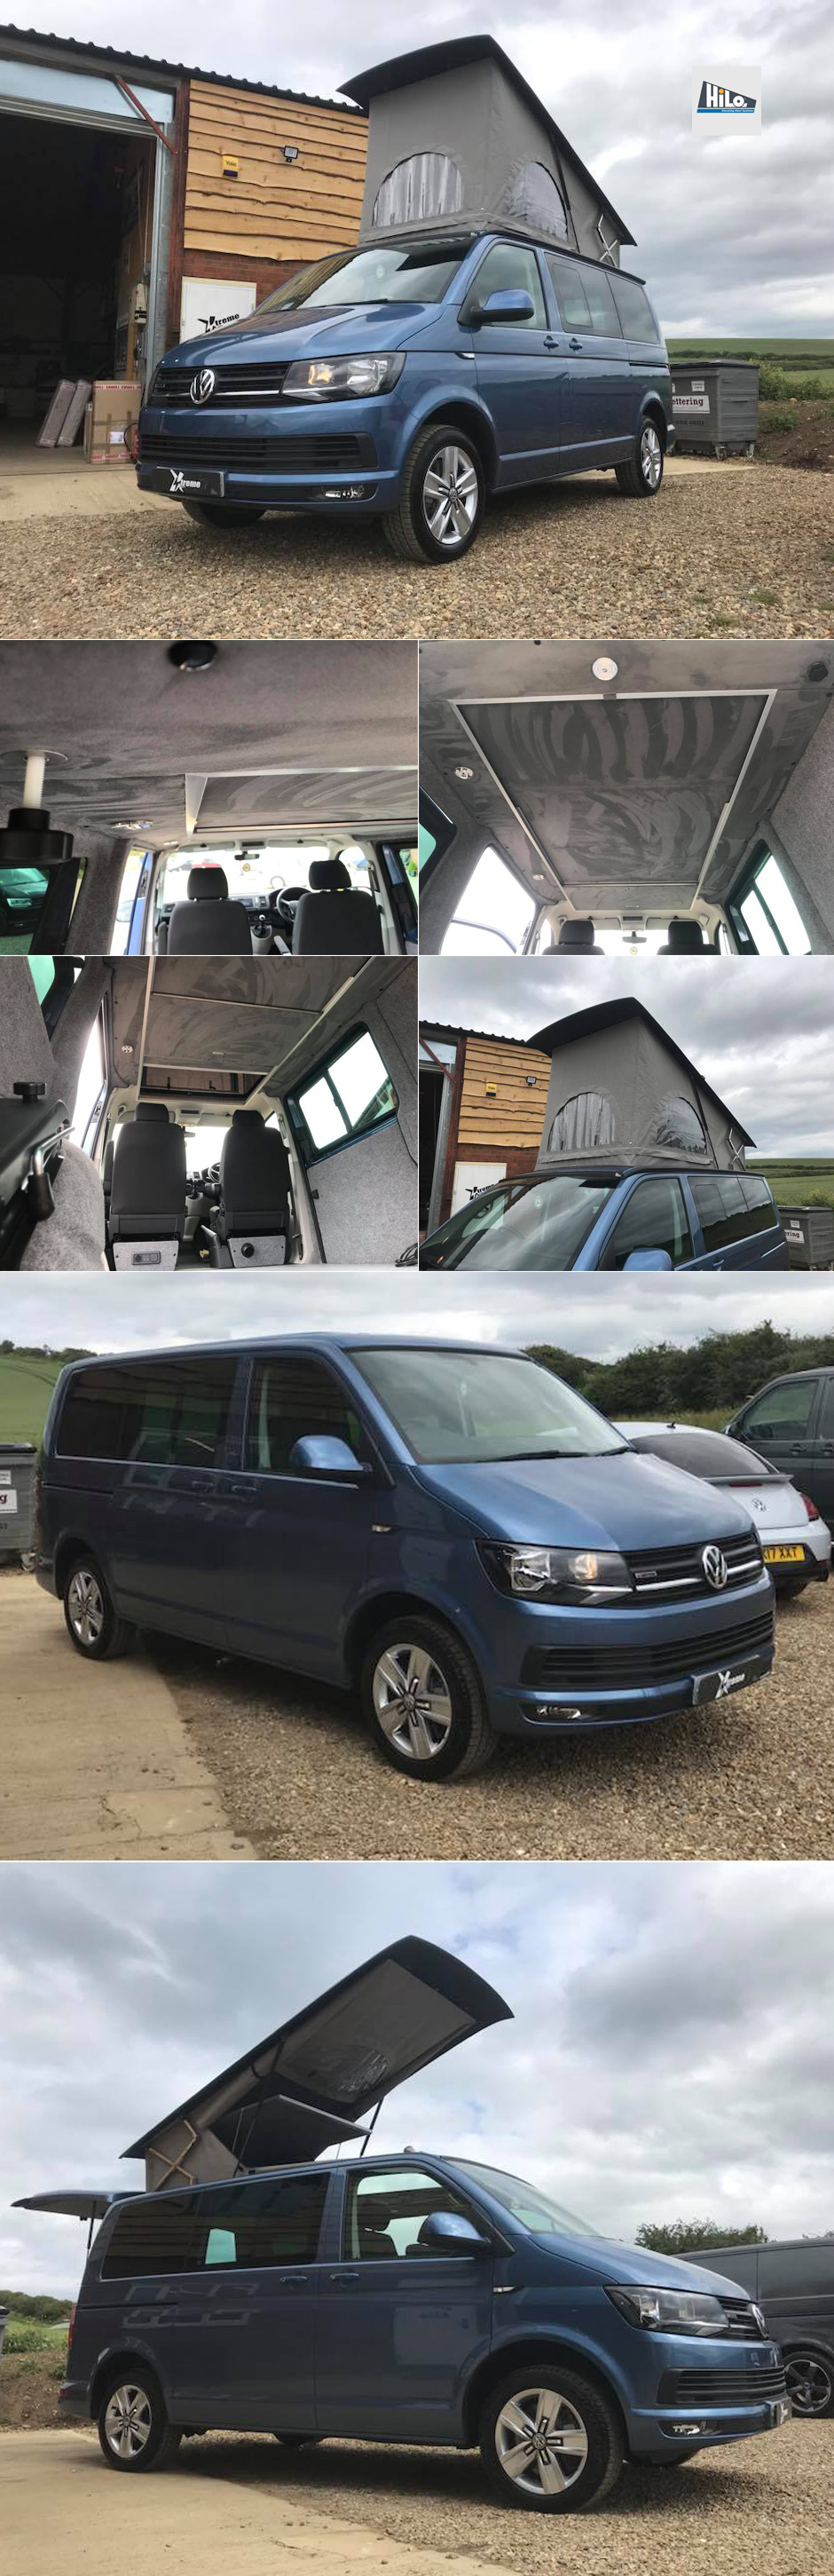 hiloroof vw t6 xtremevan east midlands